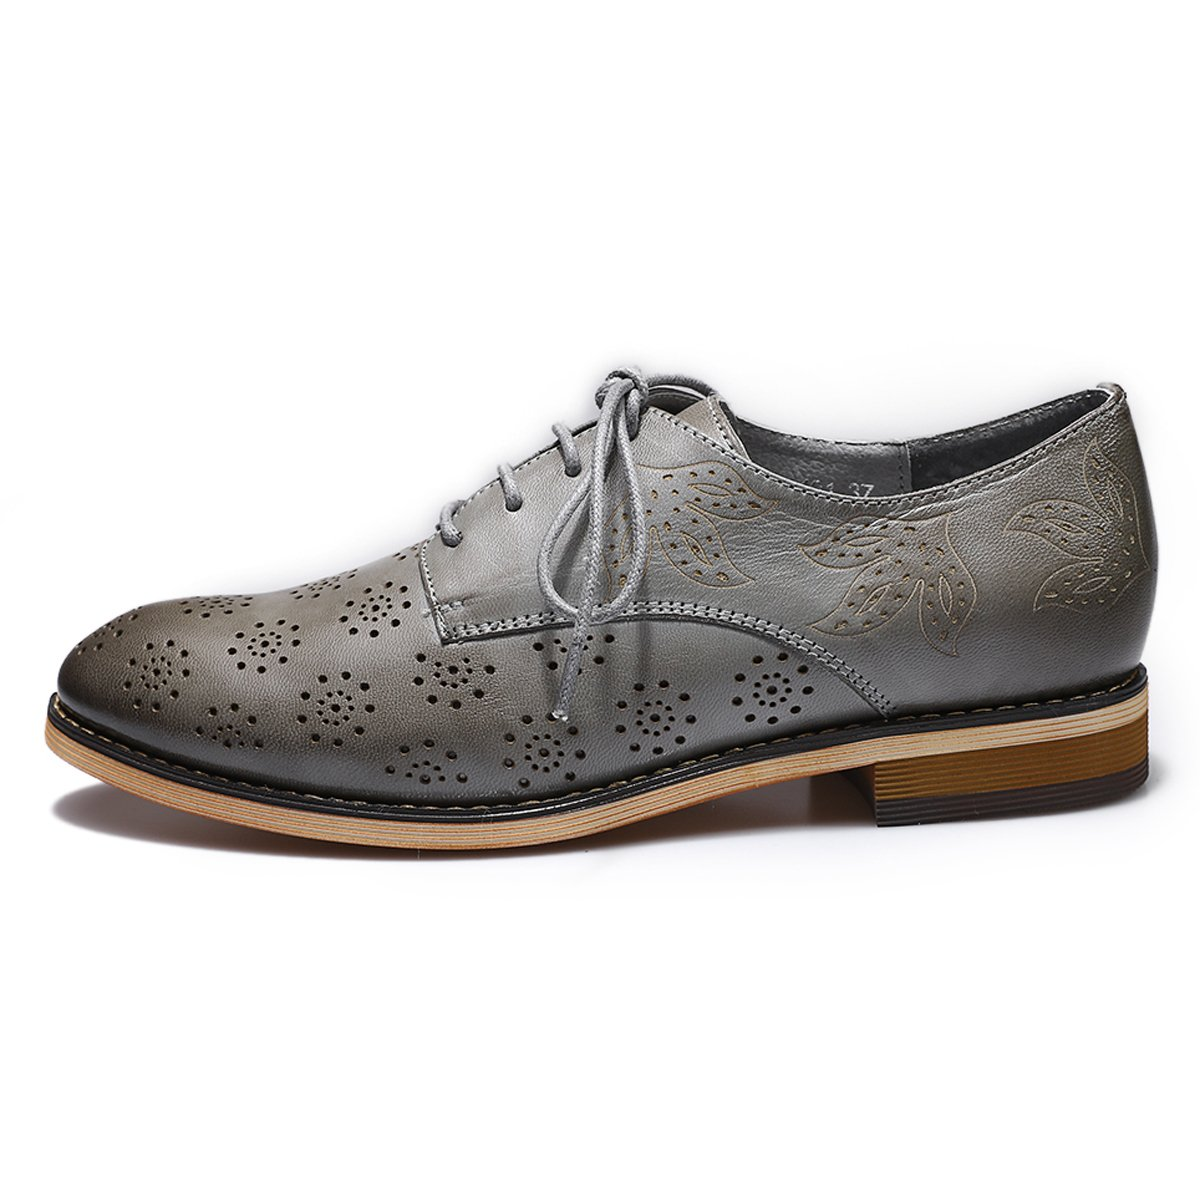 Mona Flying Women's Leather Flat Oxfords Shoes For Women Perforated Lace-up Wingtip Vintage Brogues Shoes,Grey,10 B(M) US by Mona Flying (Image #2)